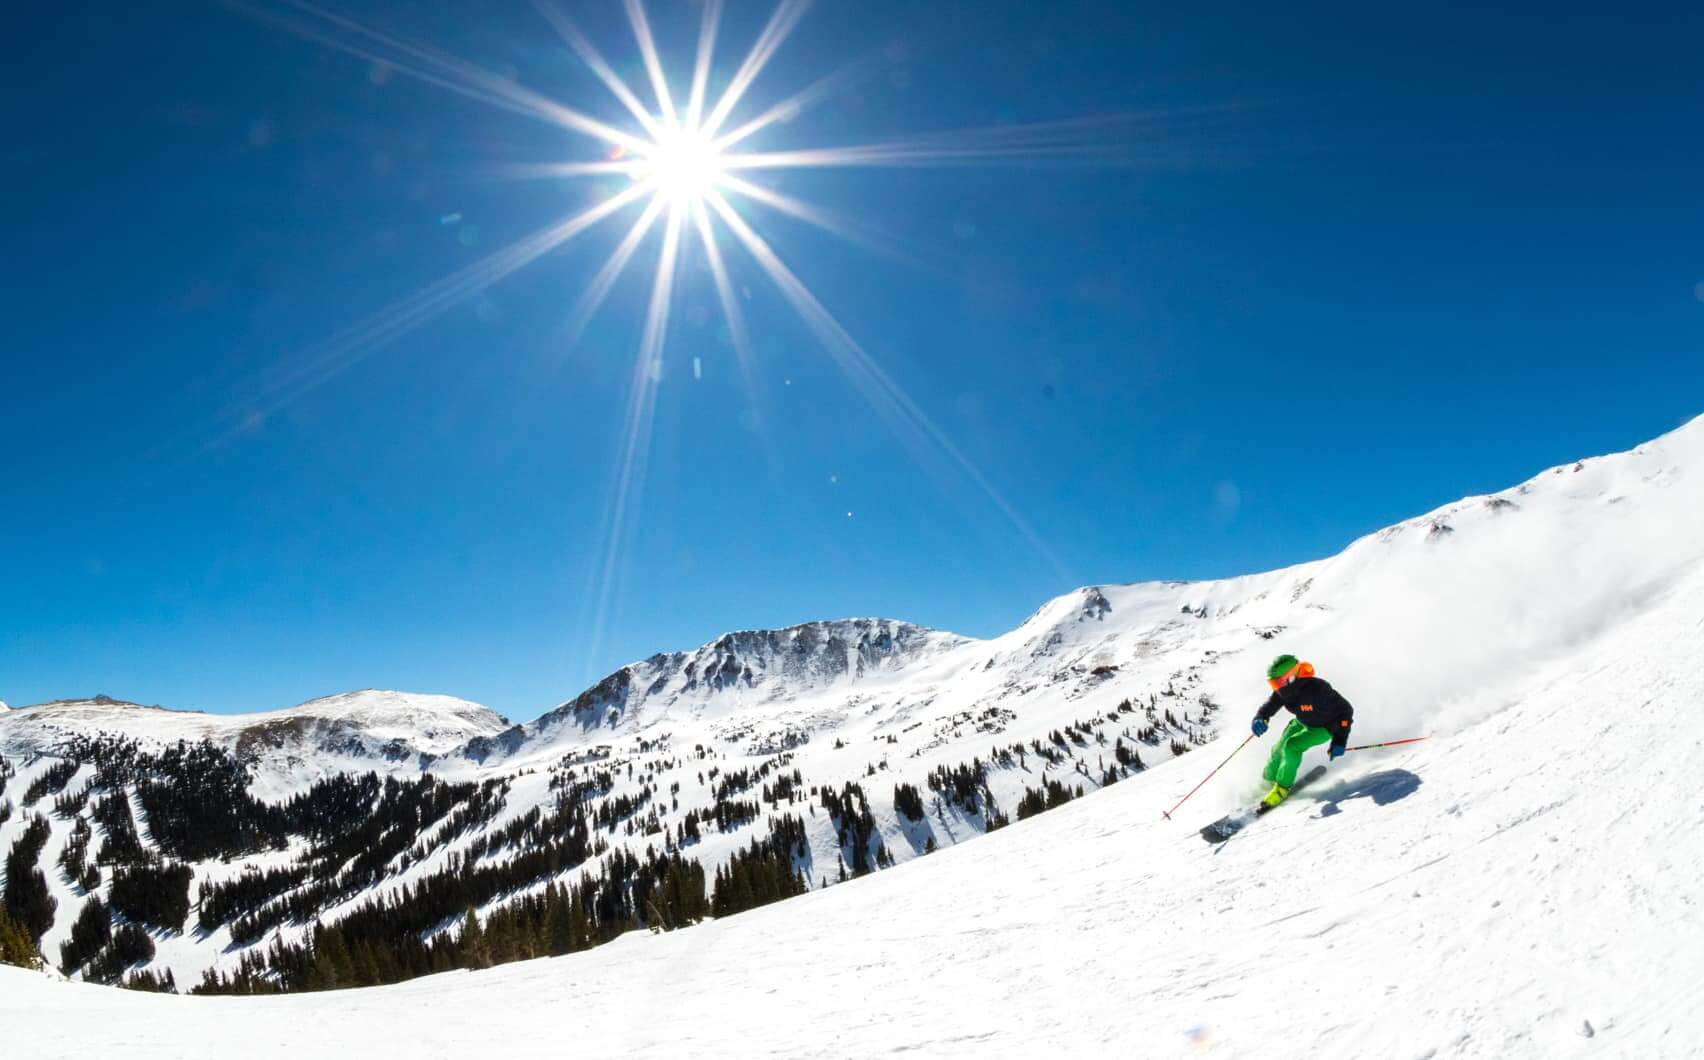 Loveland is one of the best spring skiing resorts in North America